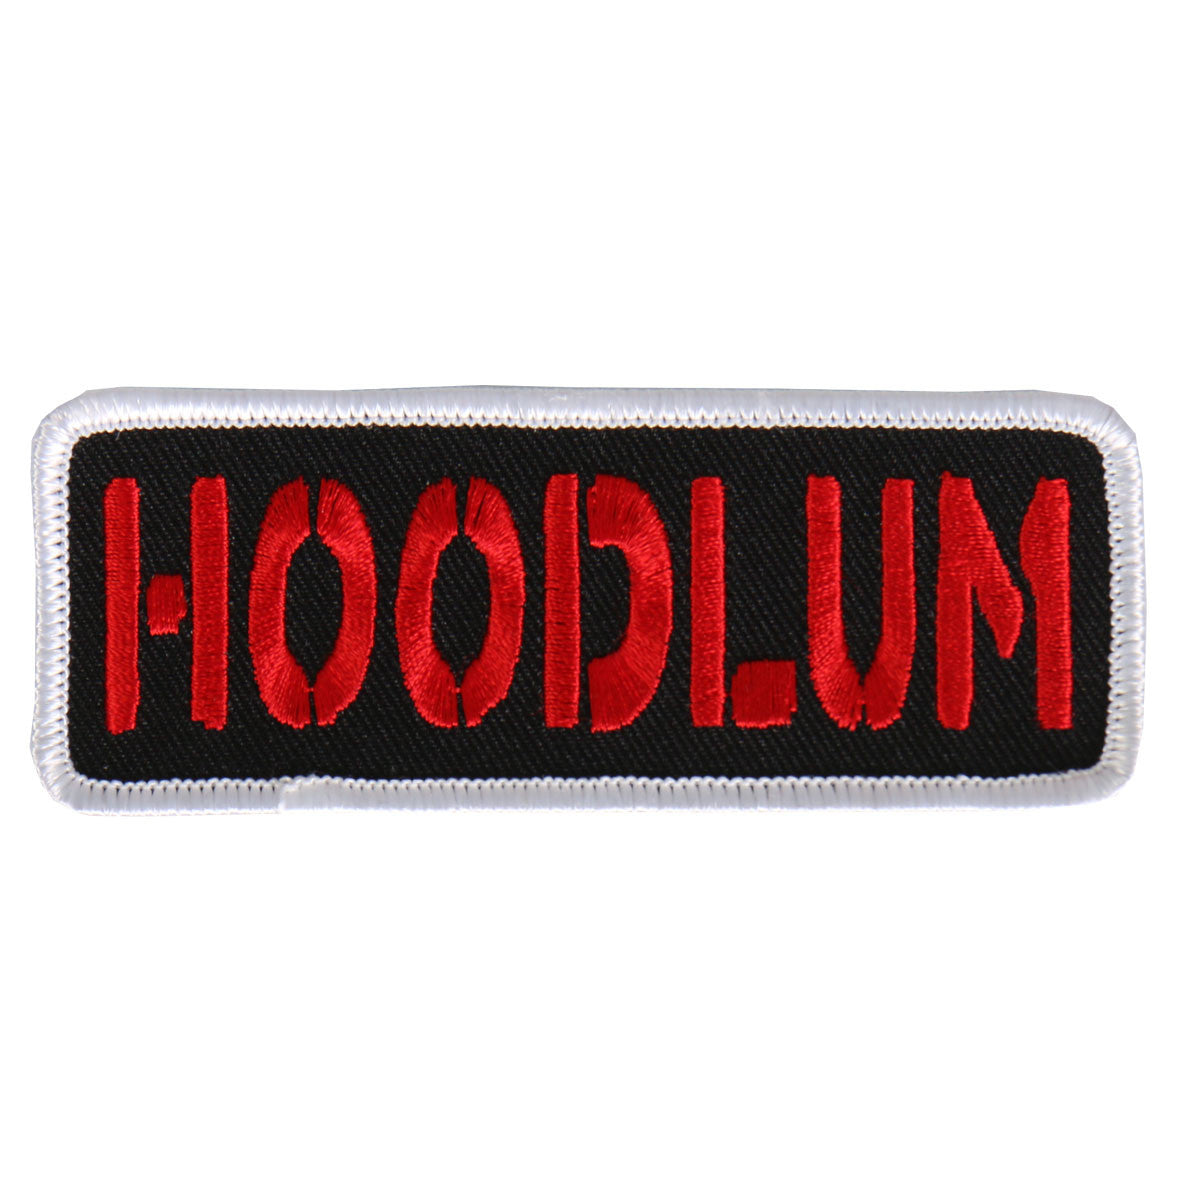 Hoodlum - Maine-Line Leather